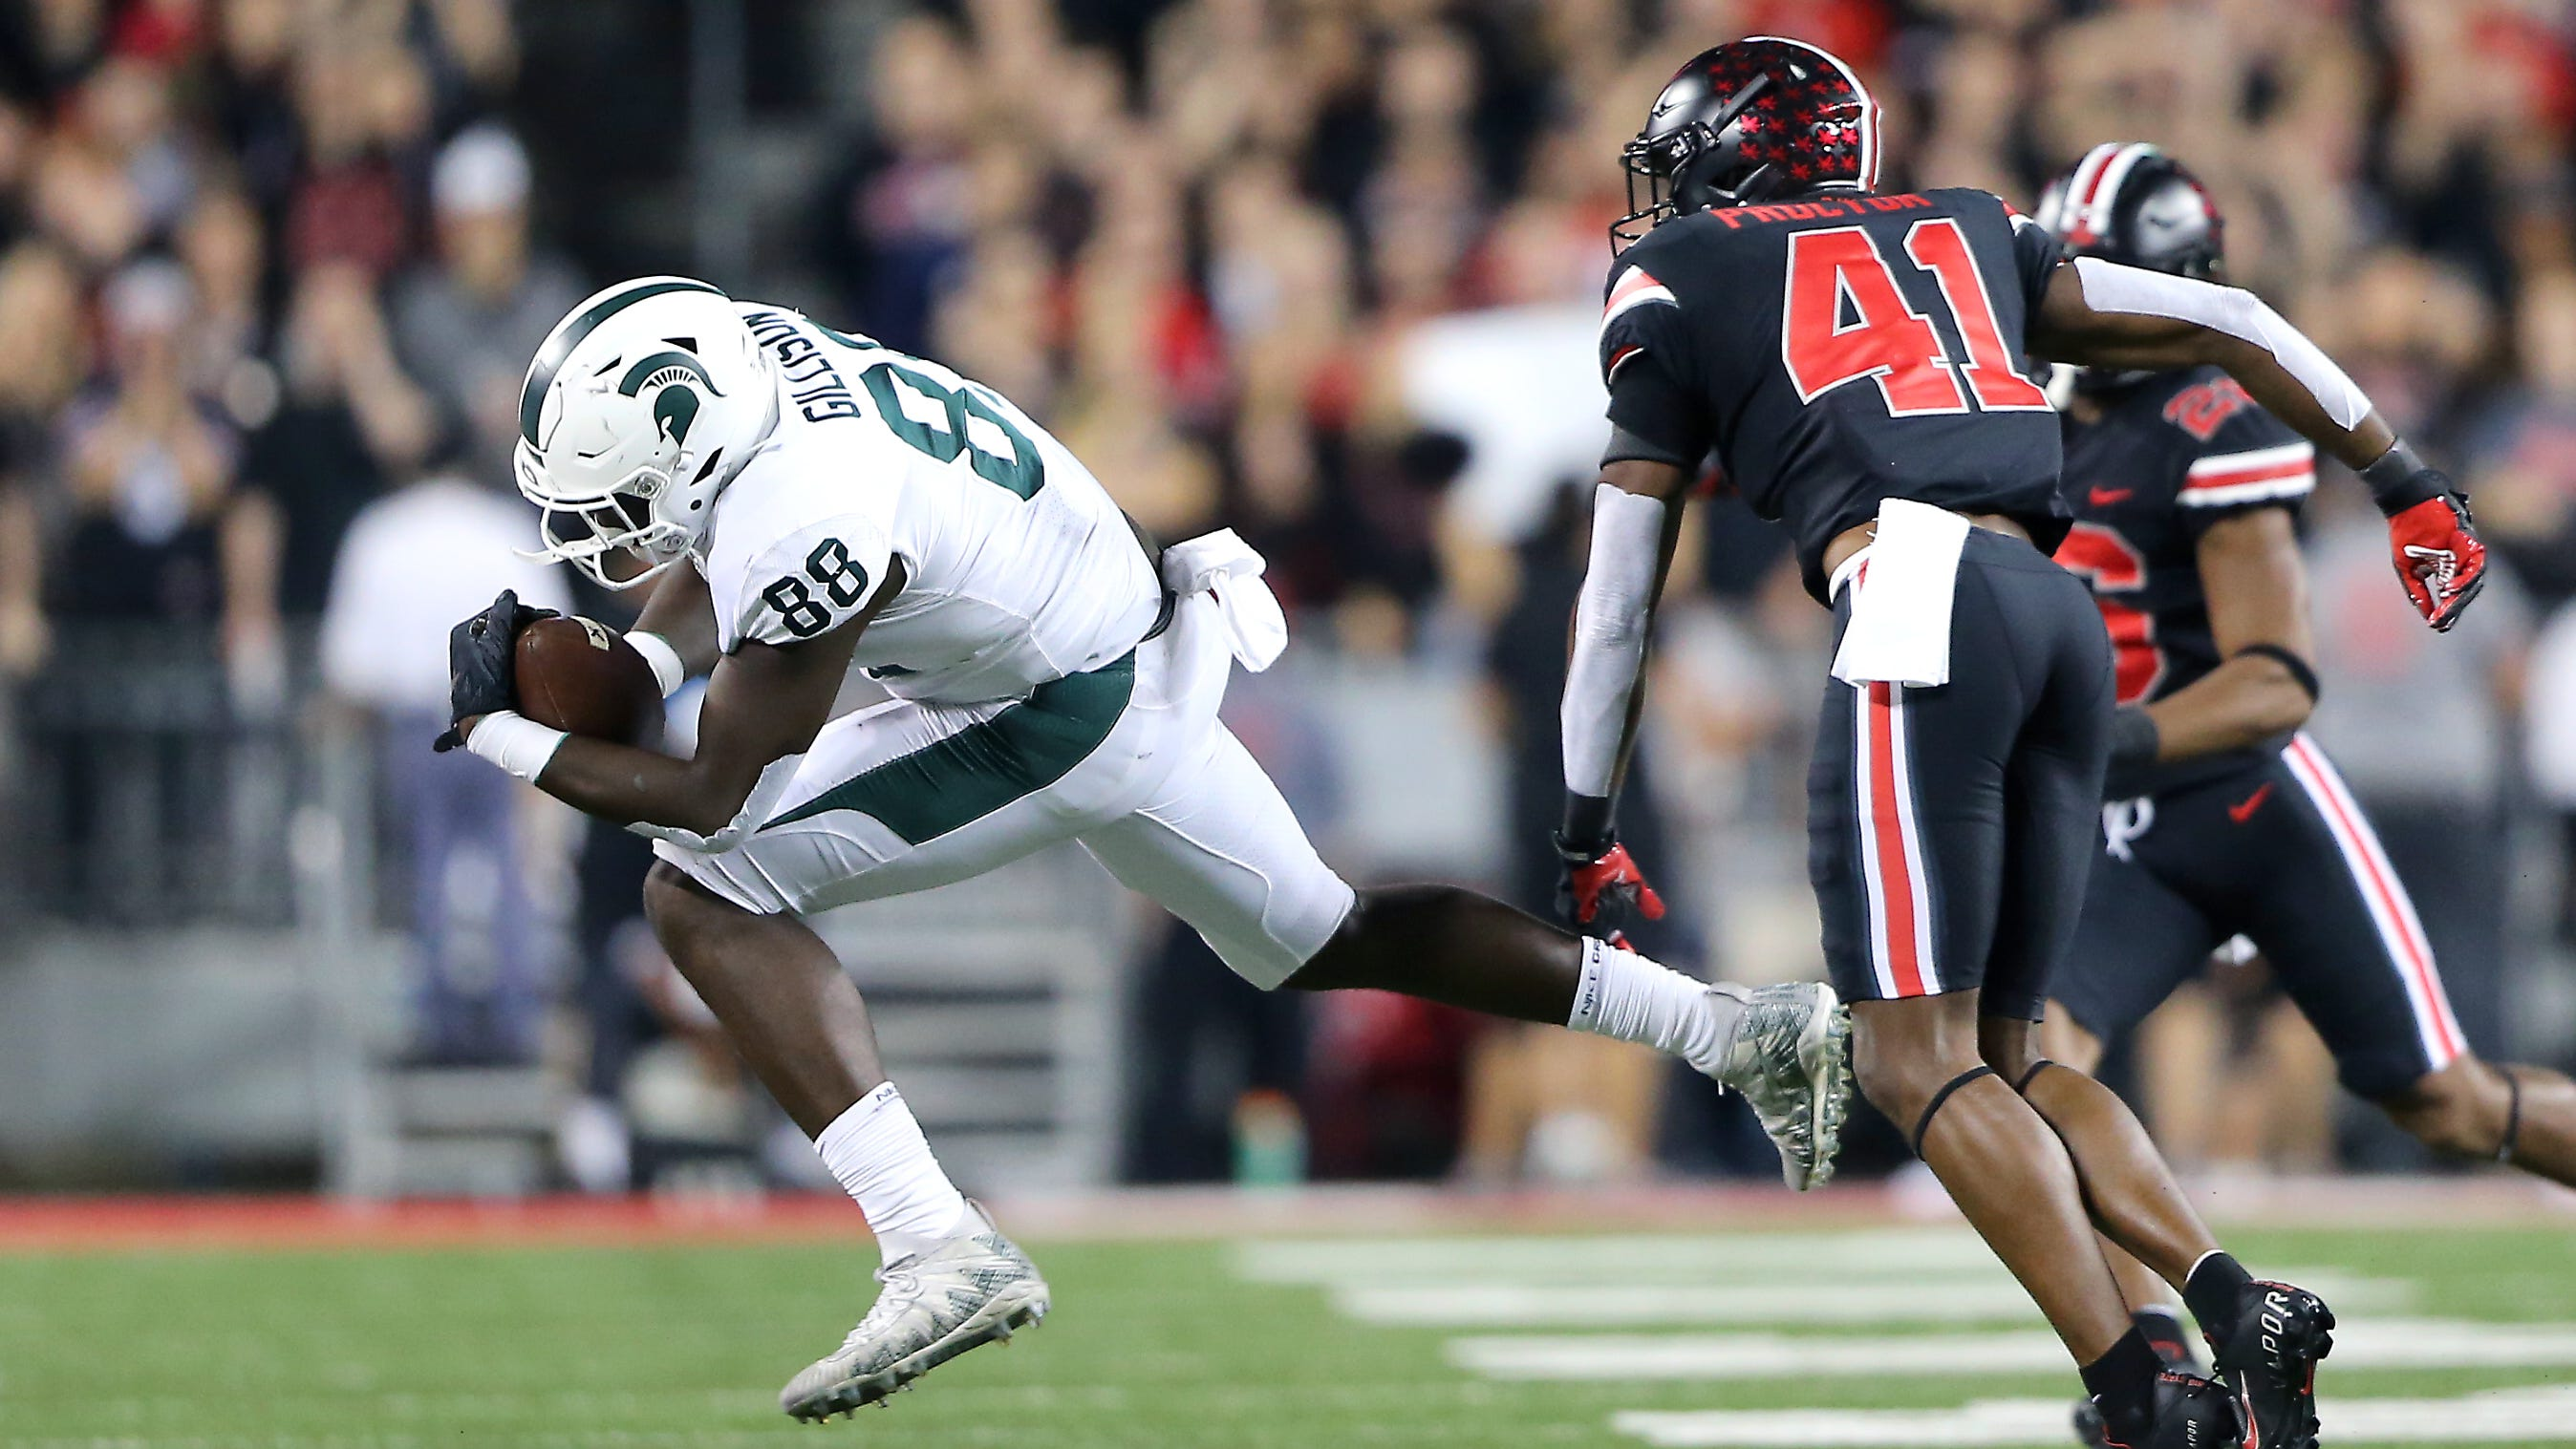 How to watch Michigan State vs. Ohio State football on TV, live stream, betting line